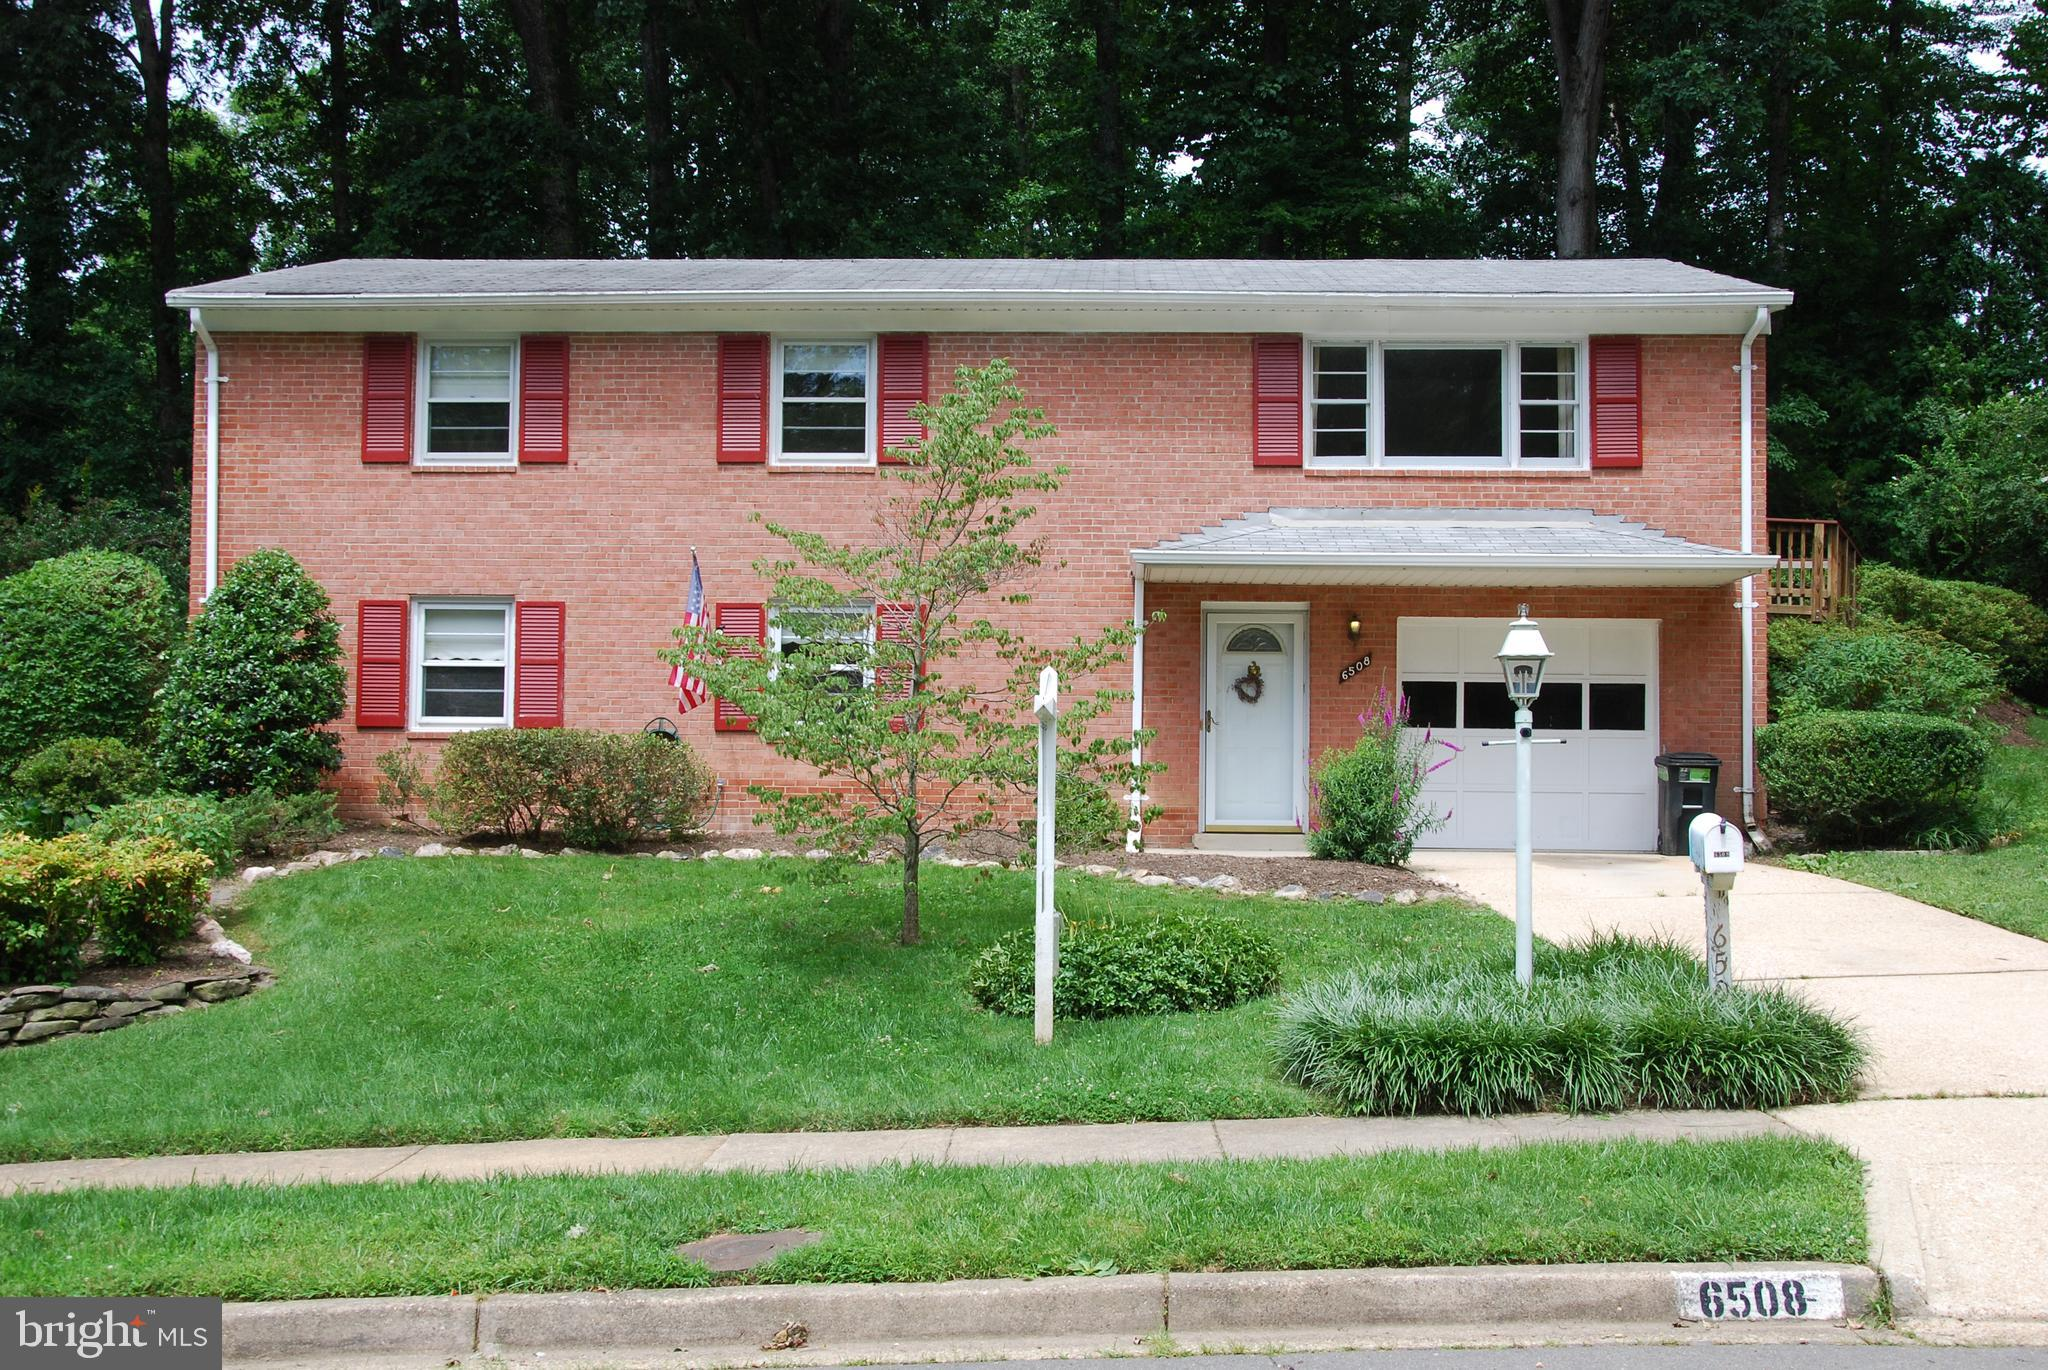 Open house Sunday 9/22, 1-4 p.m. Awesome price adjustment! Gem in the rough! Some renovations have been done. Carpets are covering wood floors waiting to be refinished, polished and buffed. Great bones, ready for a modern make over. Wonderful location with West Springfield HS, Springfield Mall and Metro, I-95, Springfield Parkway, shopping, and restaurants just minutes away.